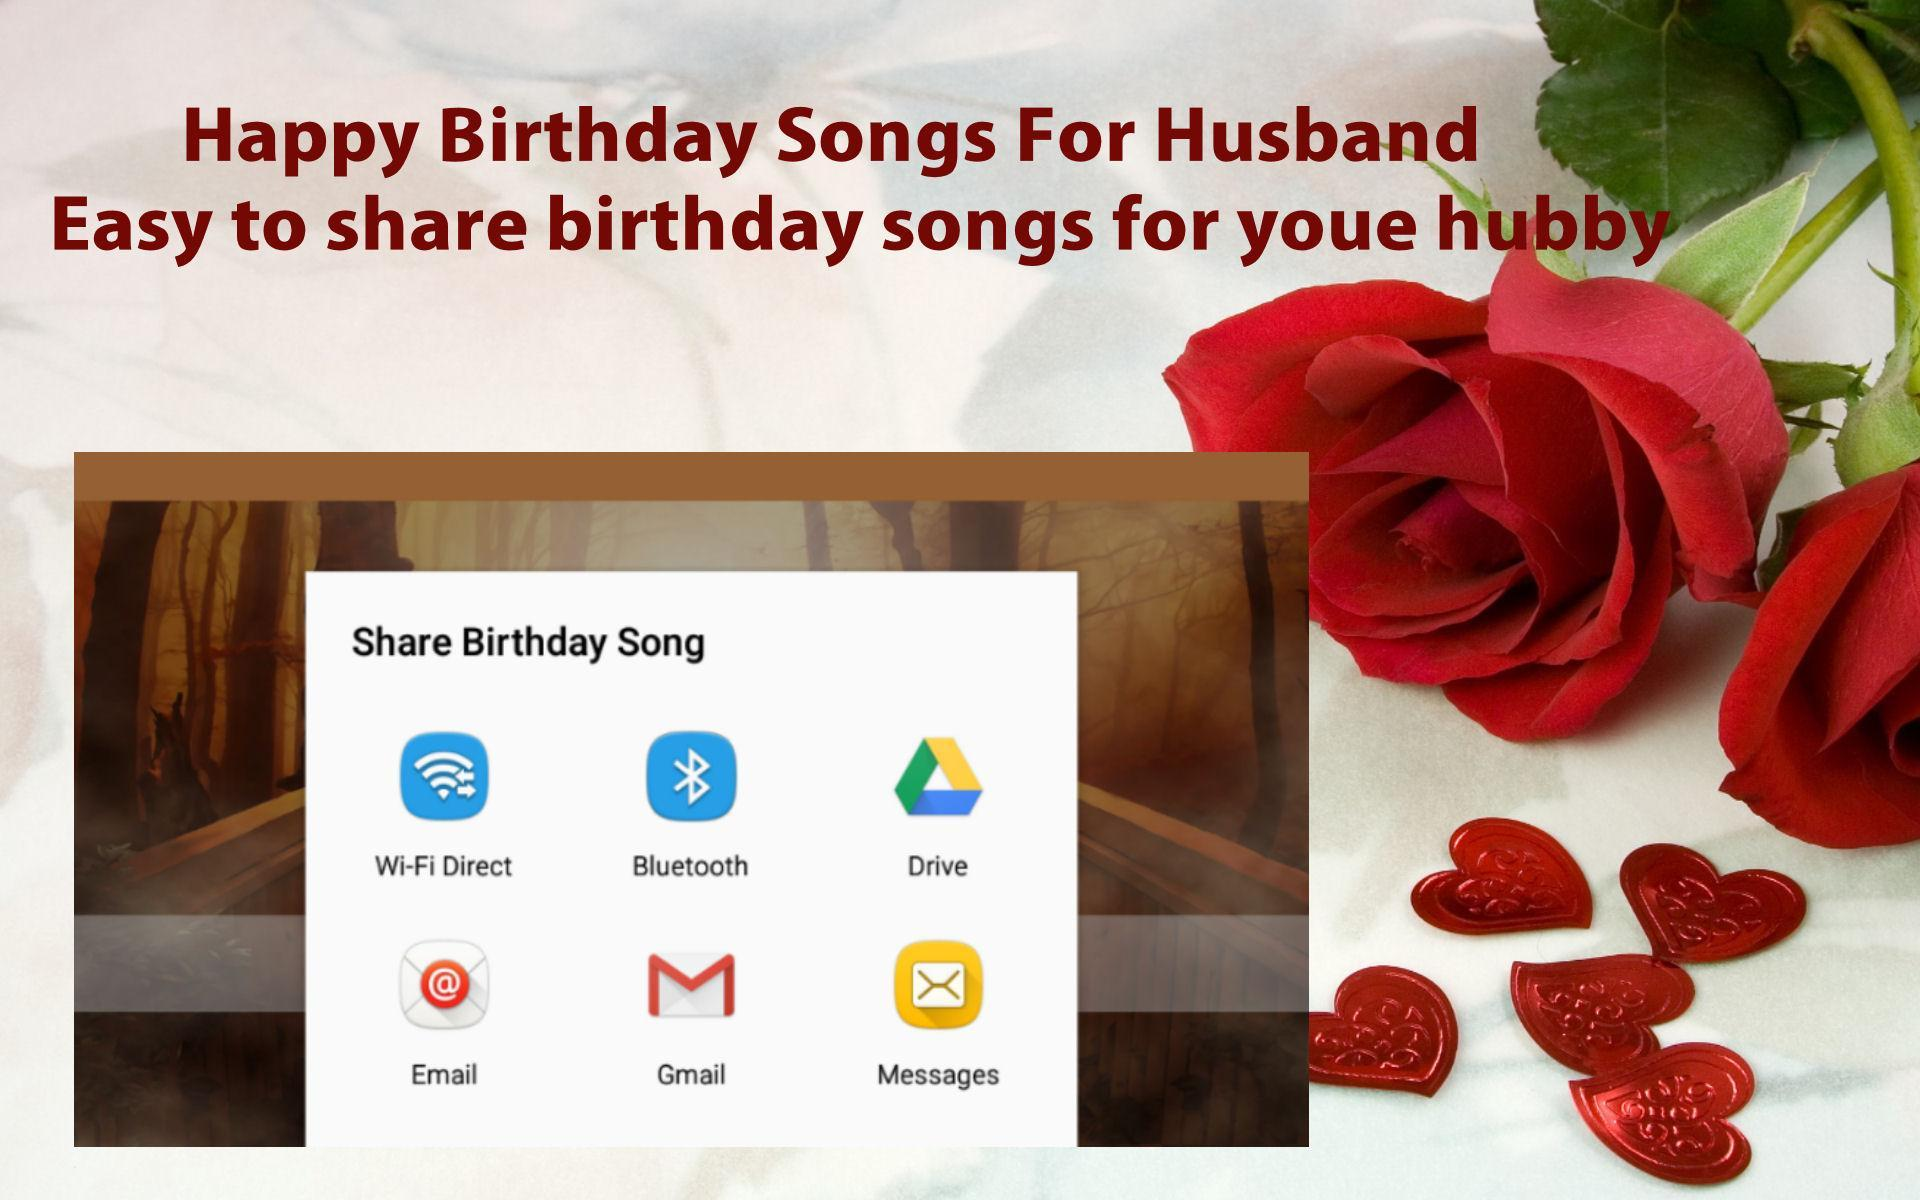 Happy Birthday Songs For Husband for Android - APK Download